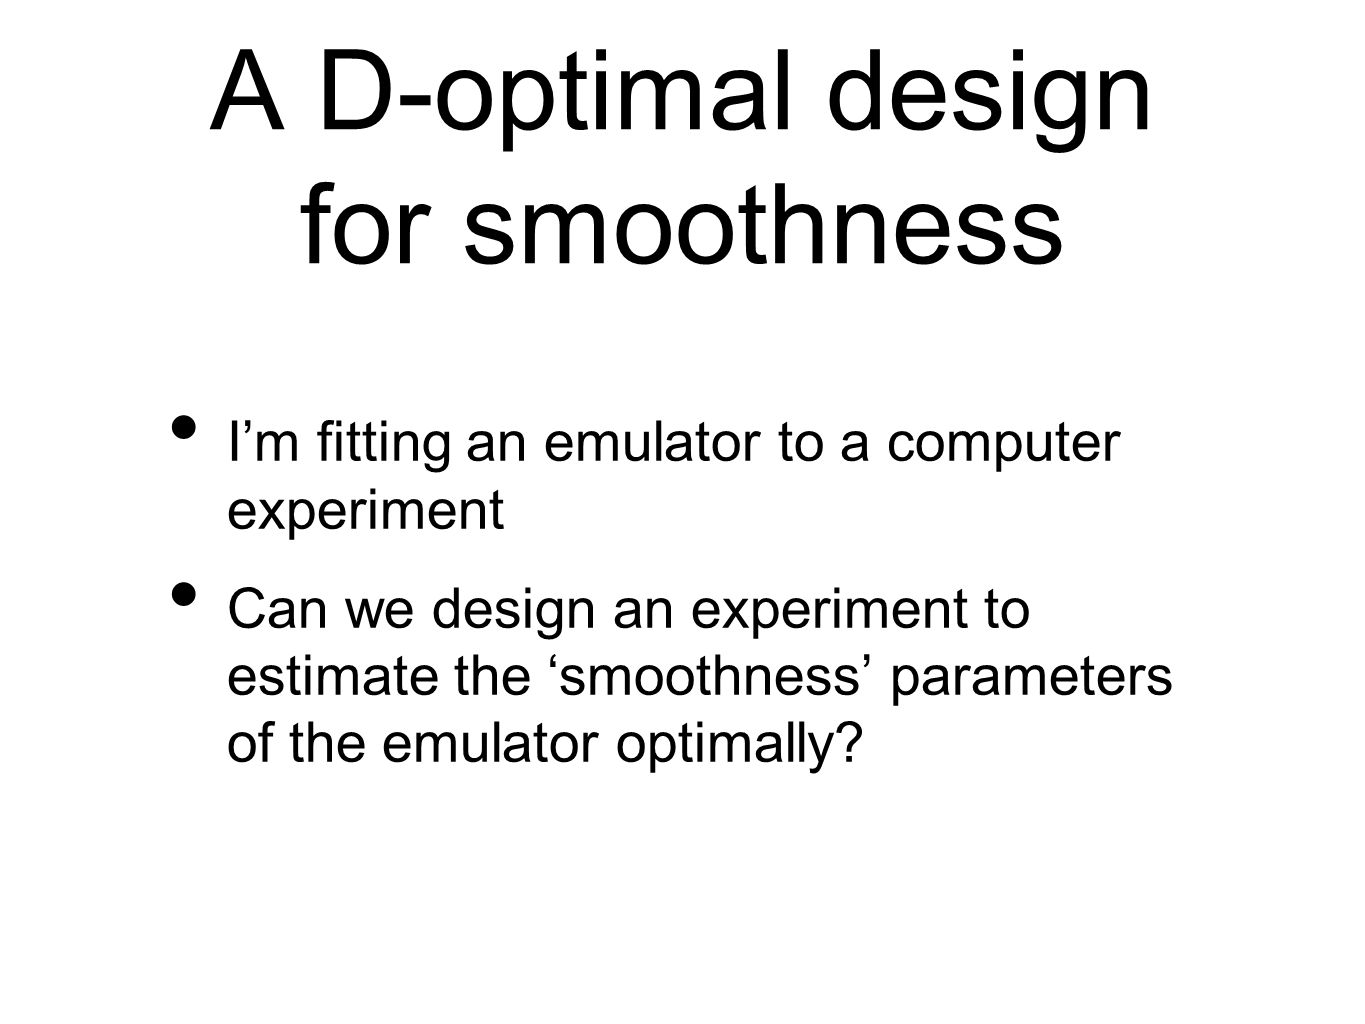 A D-optimal design for smoothness I'm fitting an emulator to a computer experiment Can we design an experiment to estimate the 'smoothness' parameters